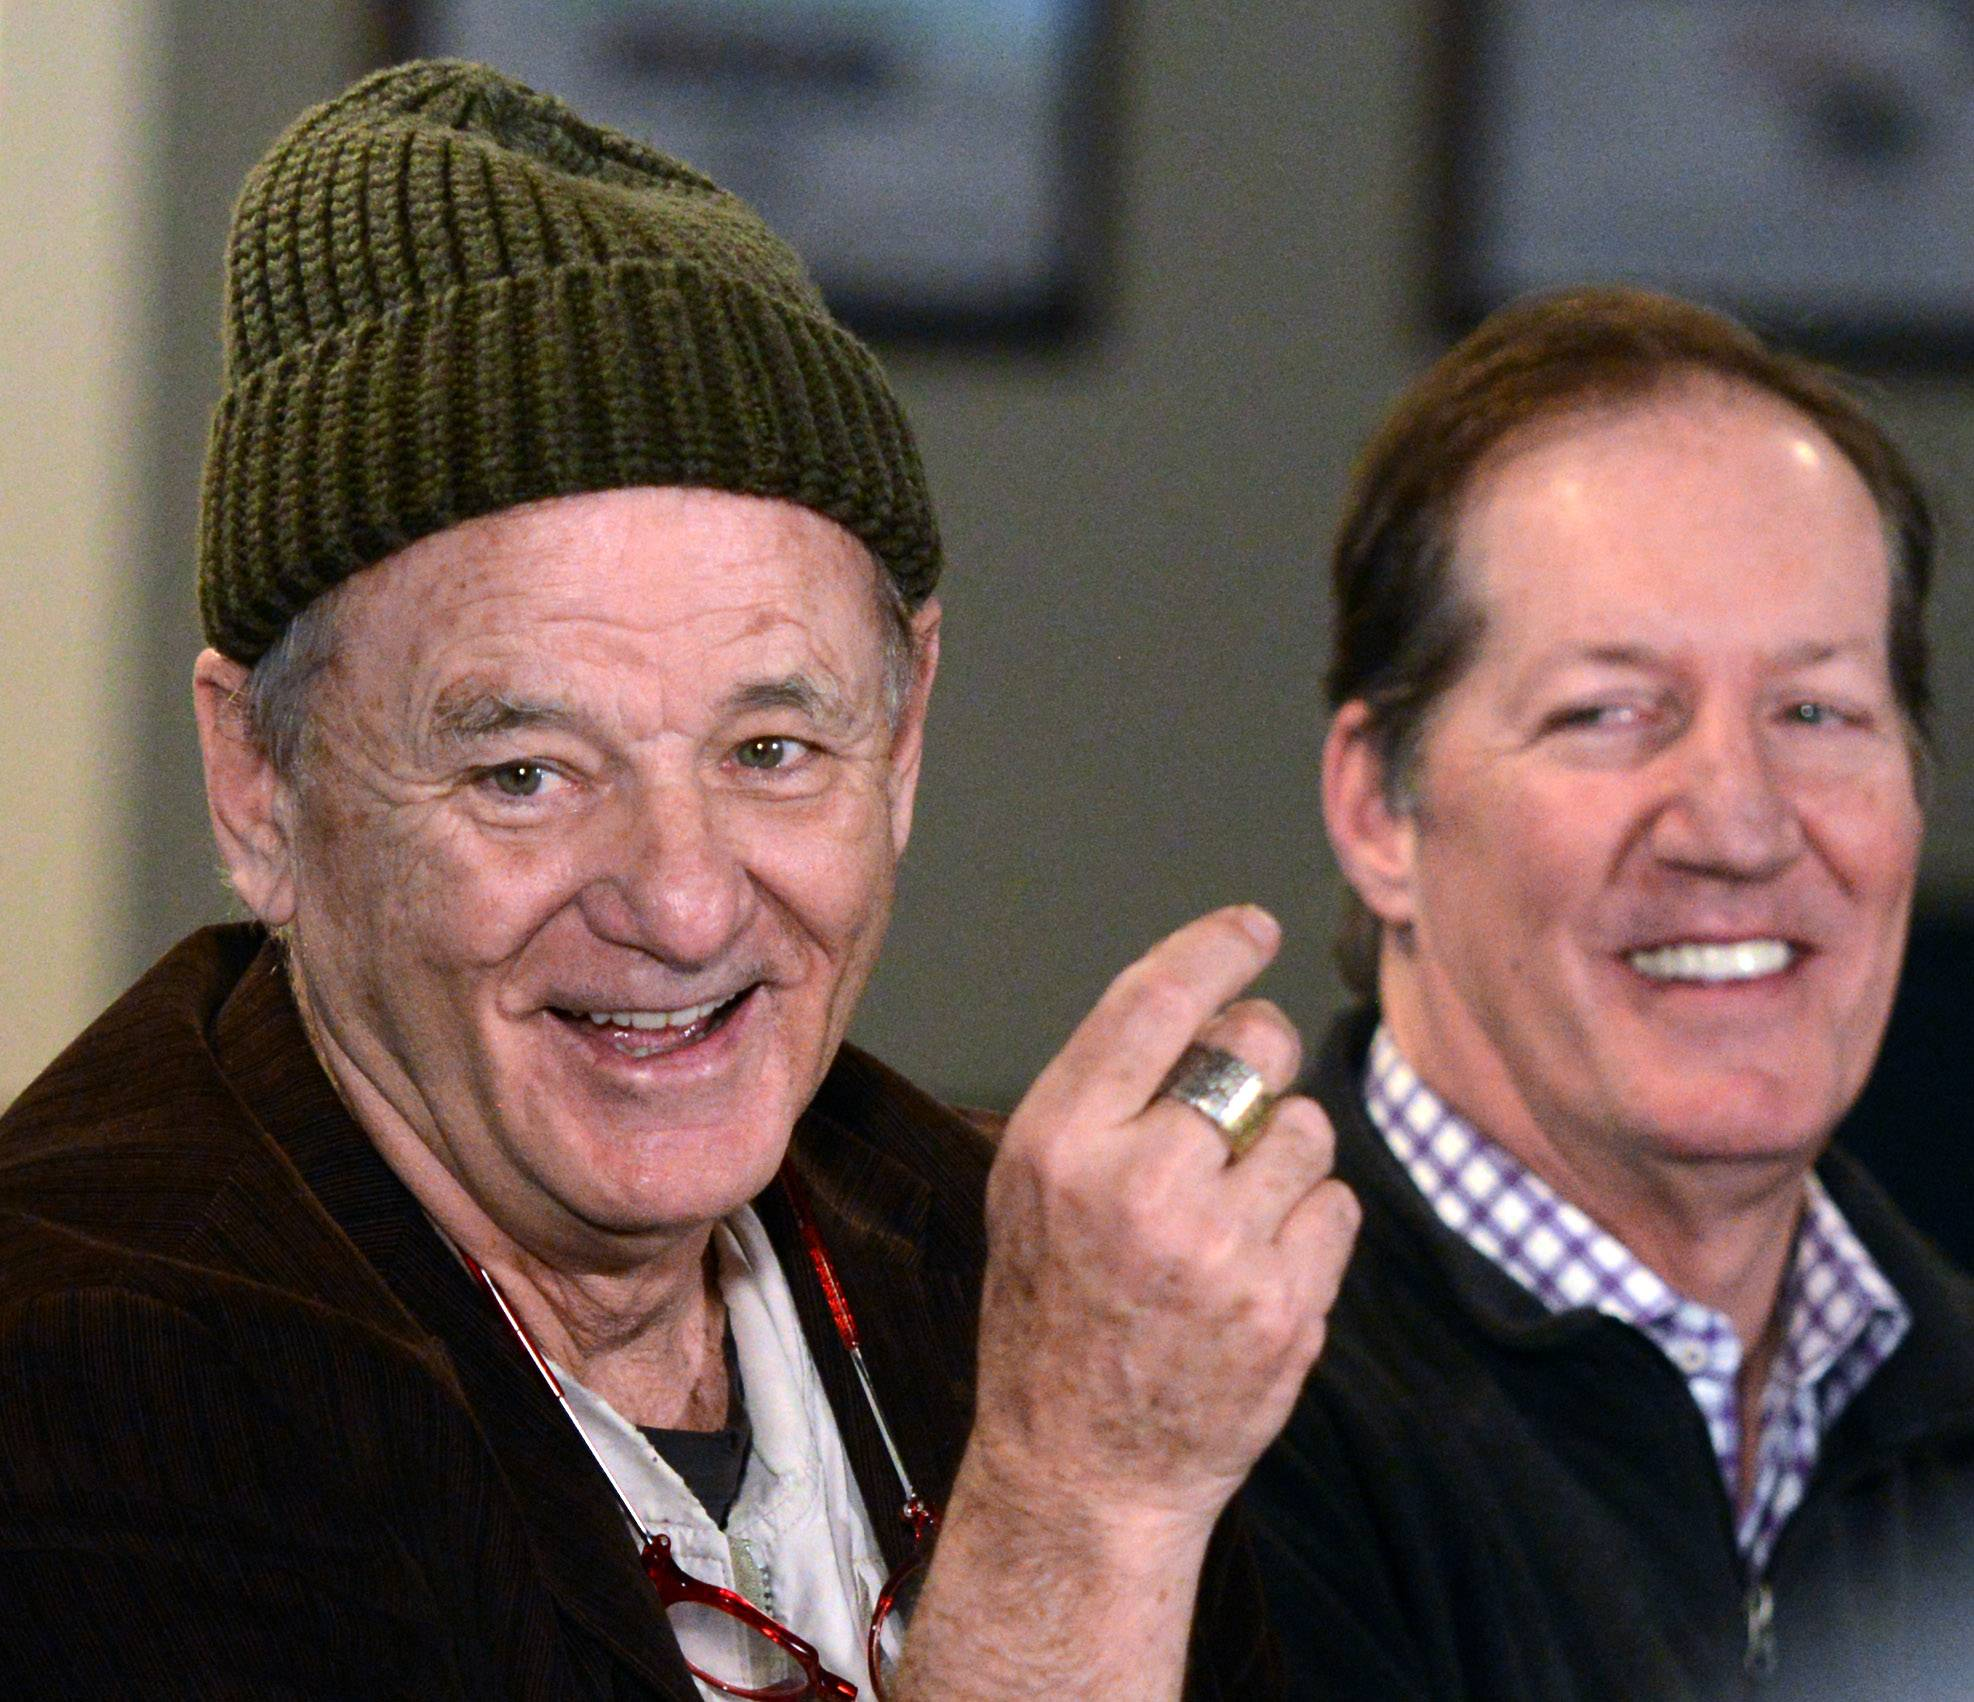 It's in the hole! Bill Murray helps open 'Caddyshack' in Rosemont